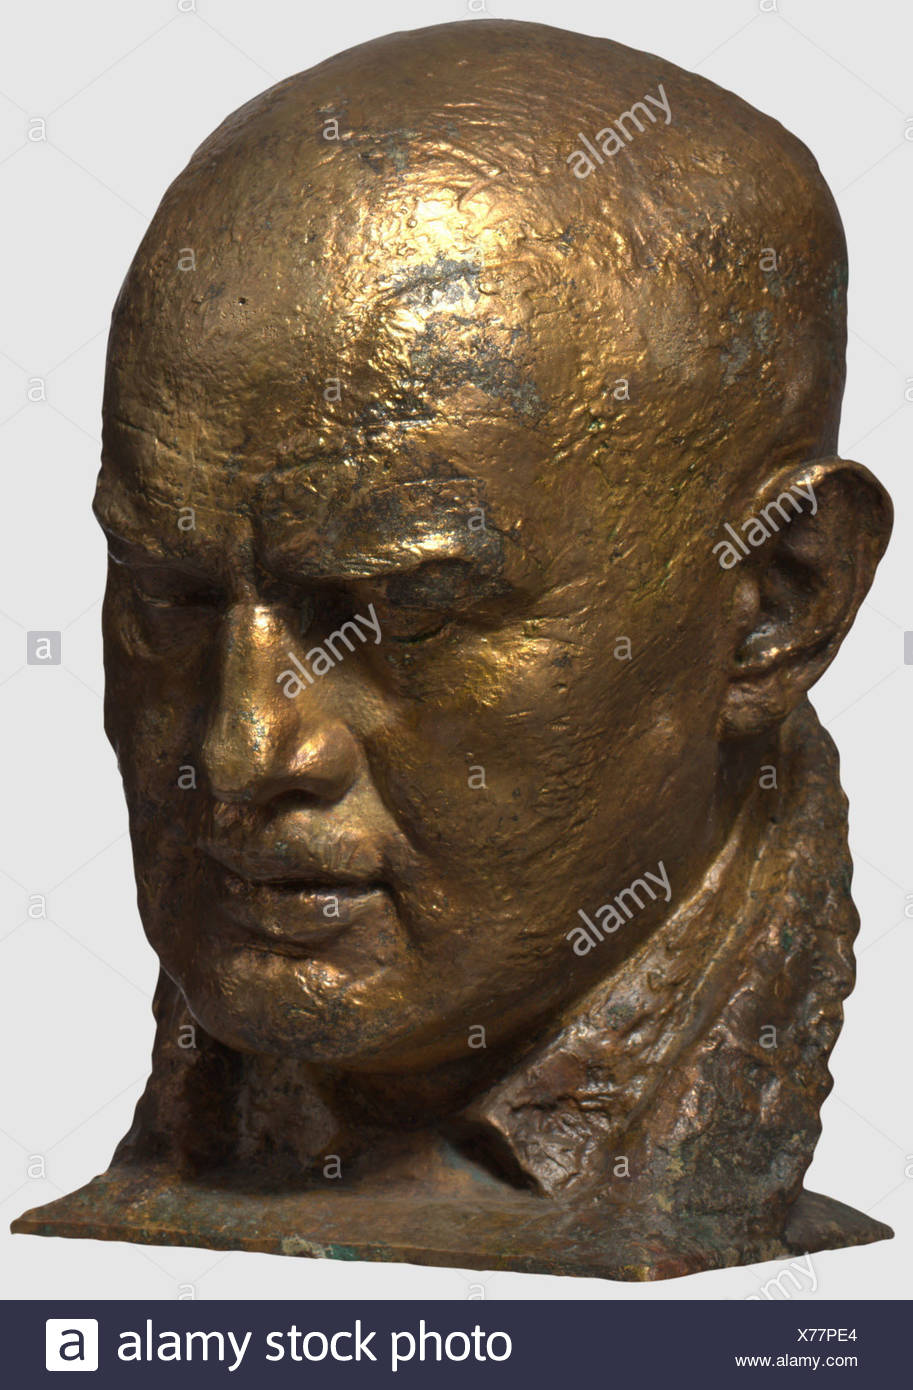 Dietrich Eckart (1868 - 1923), a portrait bust of Ferdinand Liebermann Bronze with partially preserved gold bronzing, archaeological find. The base signed 'Ferdinand Liebermann'. Height ca. 33.5 cm. The present bust is supposedly a work made specifically for Hitler to be displayed in the large hall of the Berghof, it was found in the late 1990s slightly above the Berghof. It is said that Frieda Ewert, a woman working there, recovered the bust after the bombardment of the Obersalzberg and took it with her, until she lost her strength while crossing a bomb crater, Additional-Rights-Clearances-NA - Stock Image